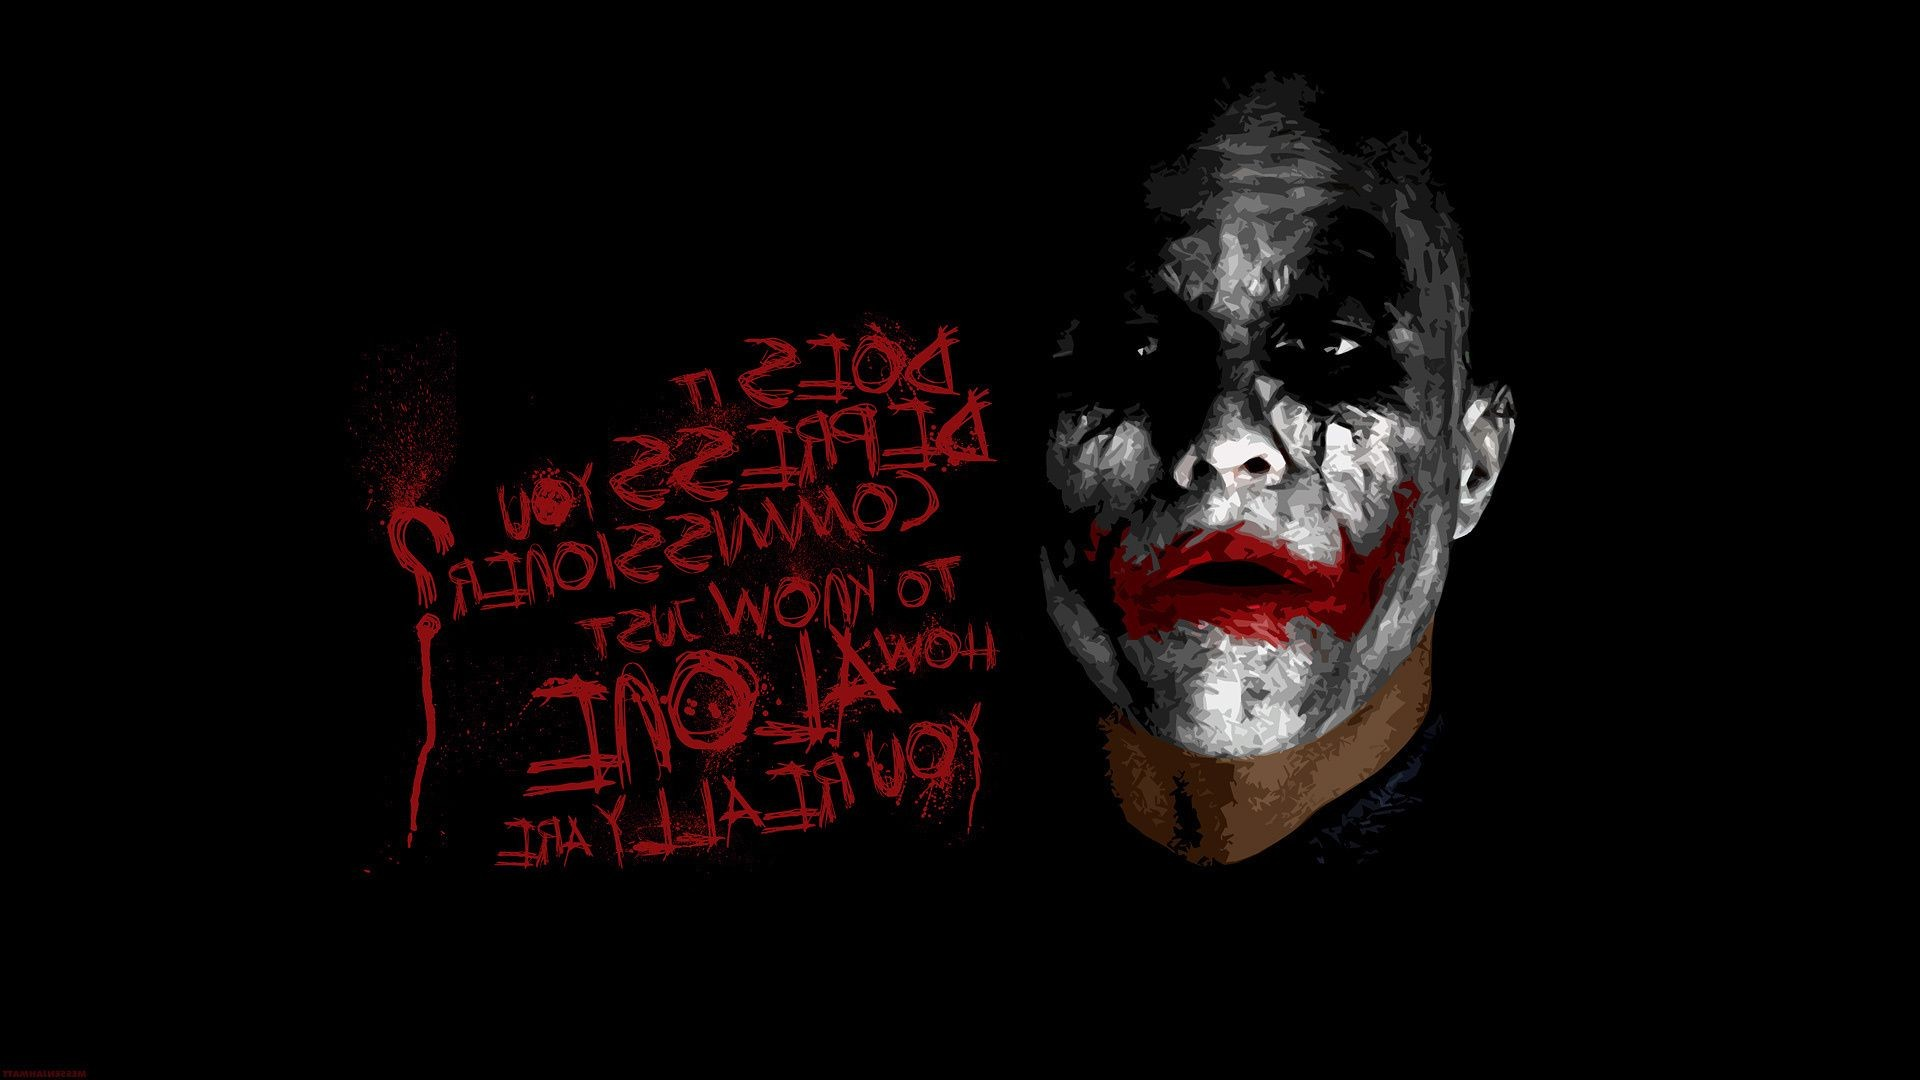 Heath Ledger Dark Knight The Batman Joker Joke Android Wallpapers For Free